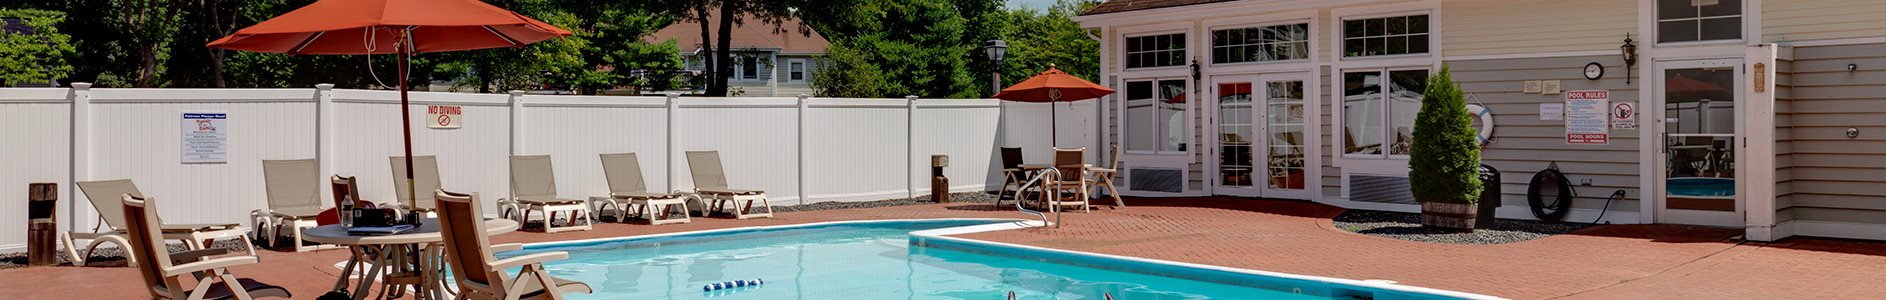 Outdoor swimming pool at Littlebrook apartments in Hudson, MA